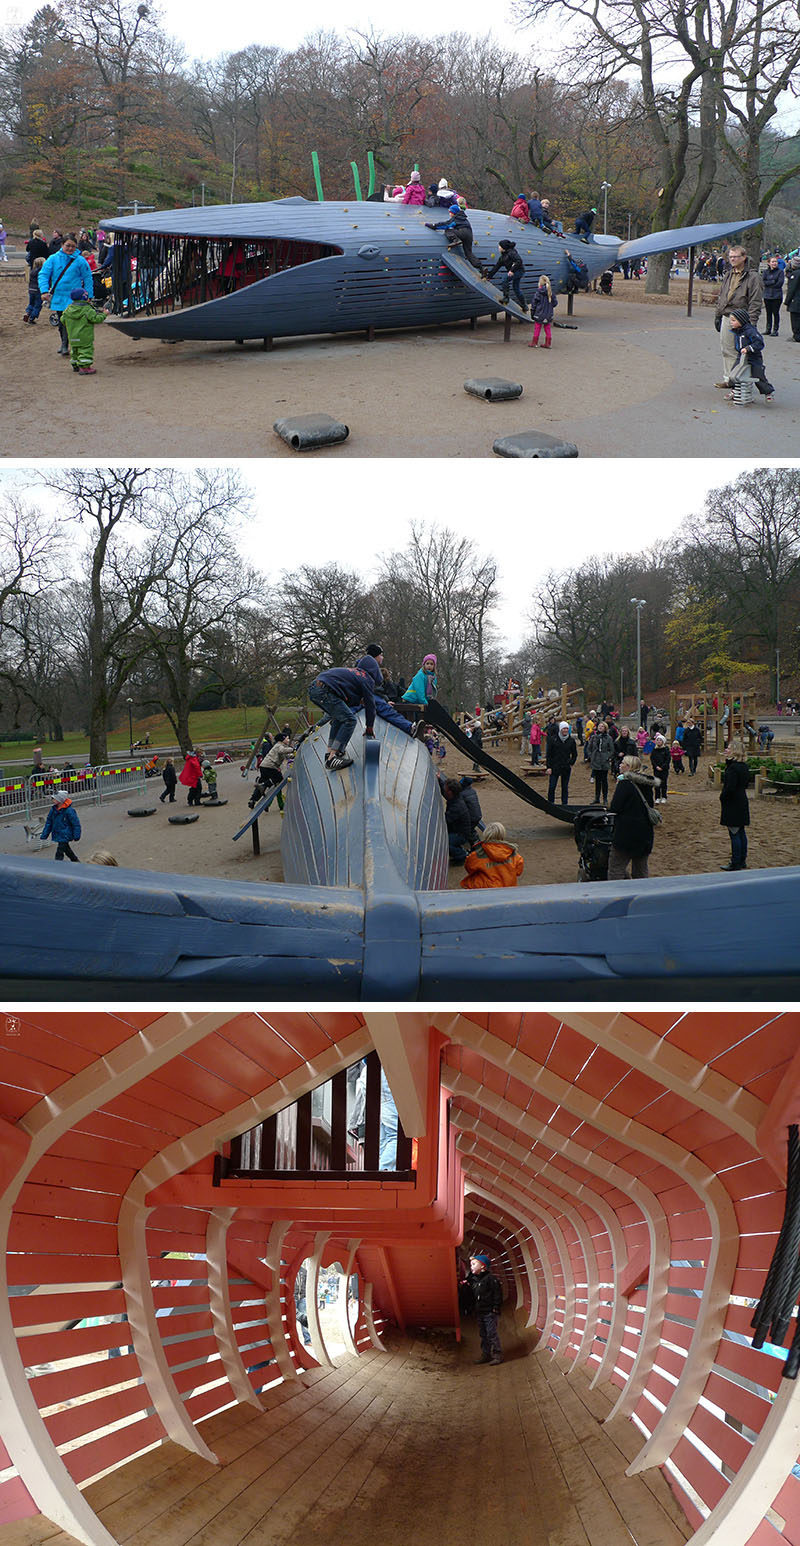 15 Amazing, Unique And Creative Playgrounds // A Blue Whale